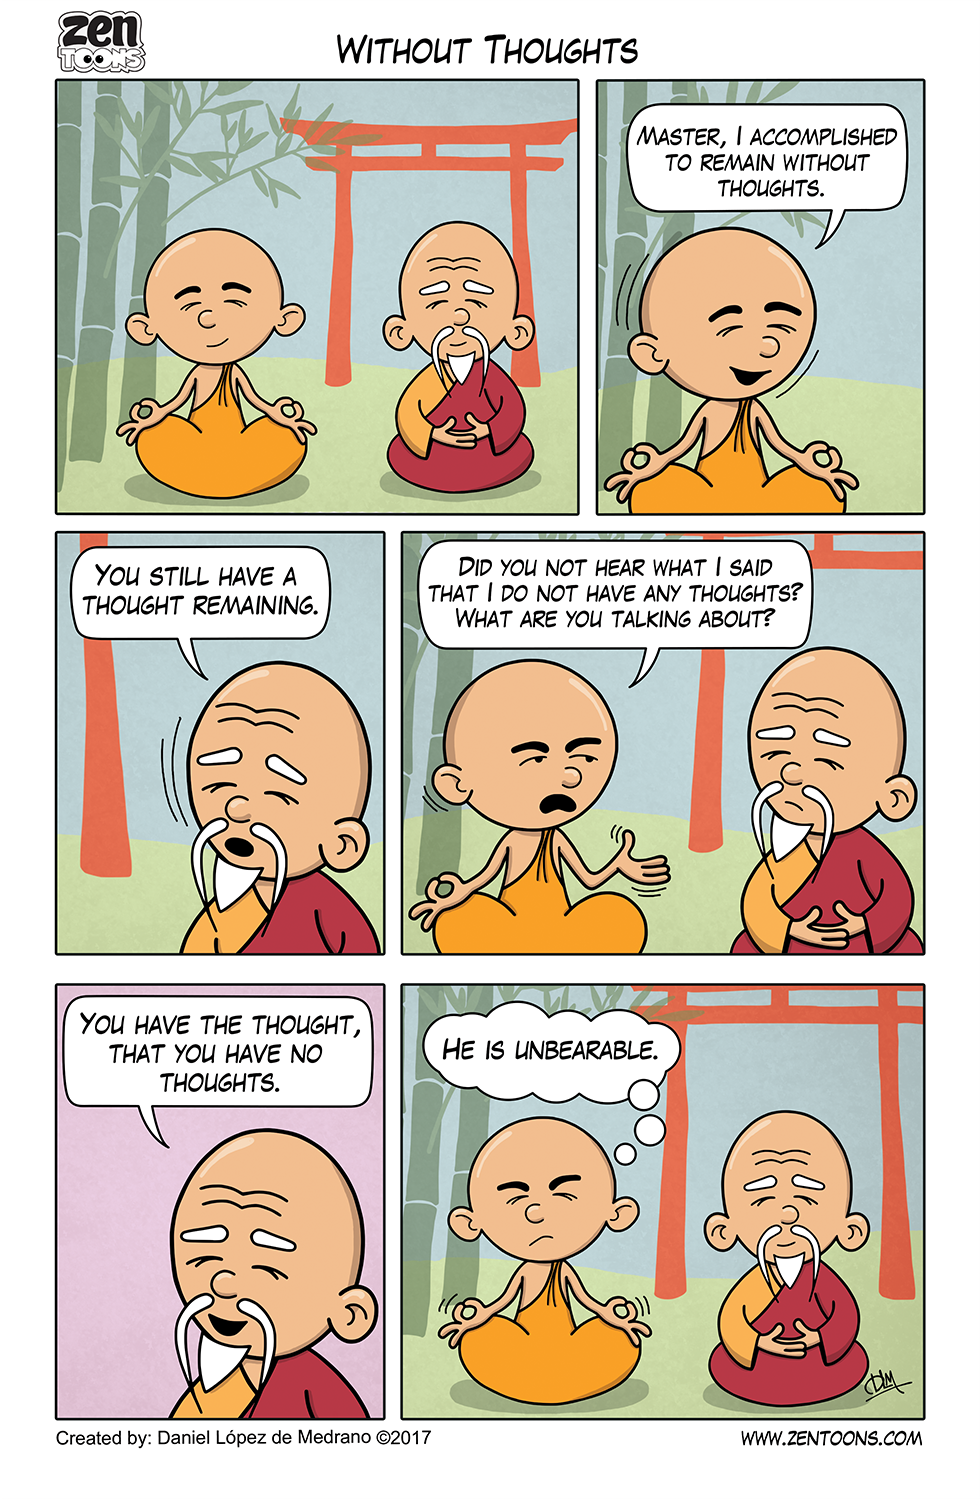 019. ZEN TOONS: Without Thoughts.